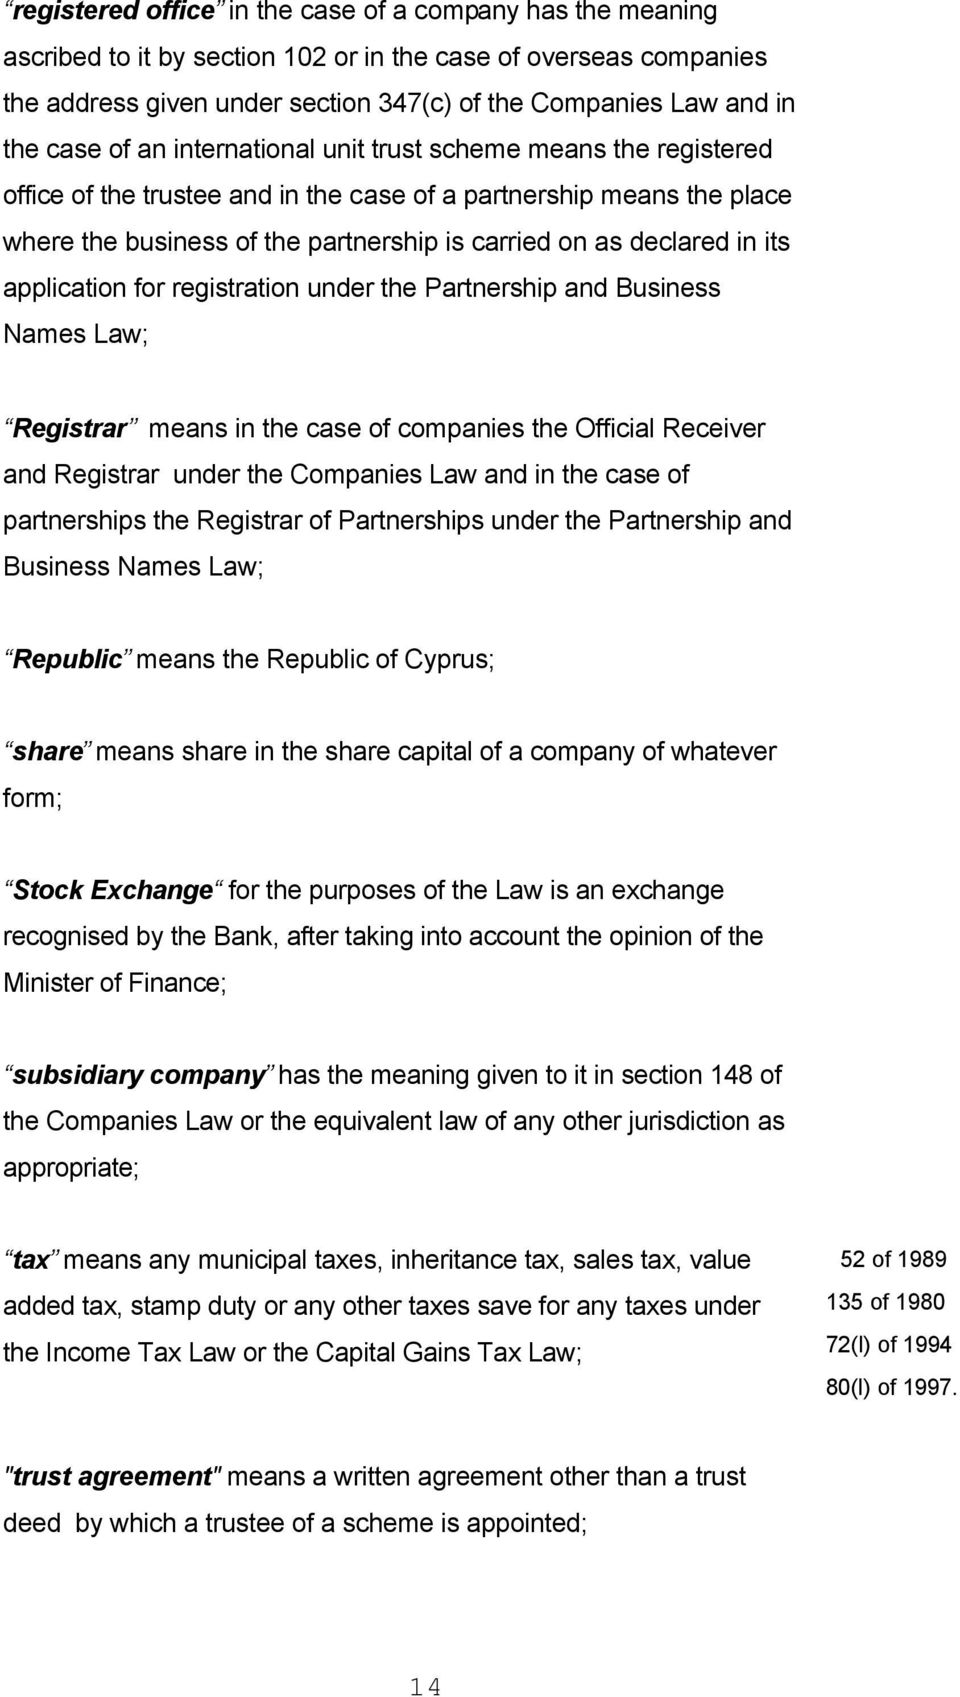 in its application for registration under the Partnership and Business Names Law; Registrar means in the case of companies the Official Receiver and Registrar under the Companies Law and in the case